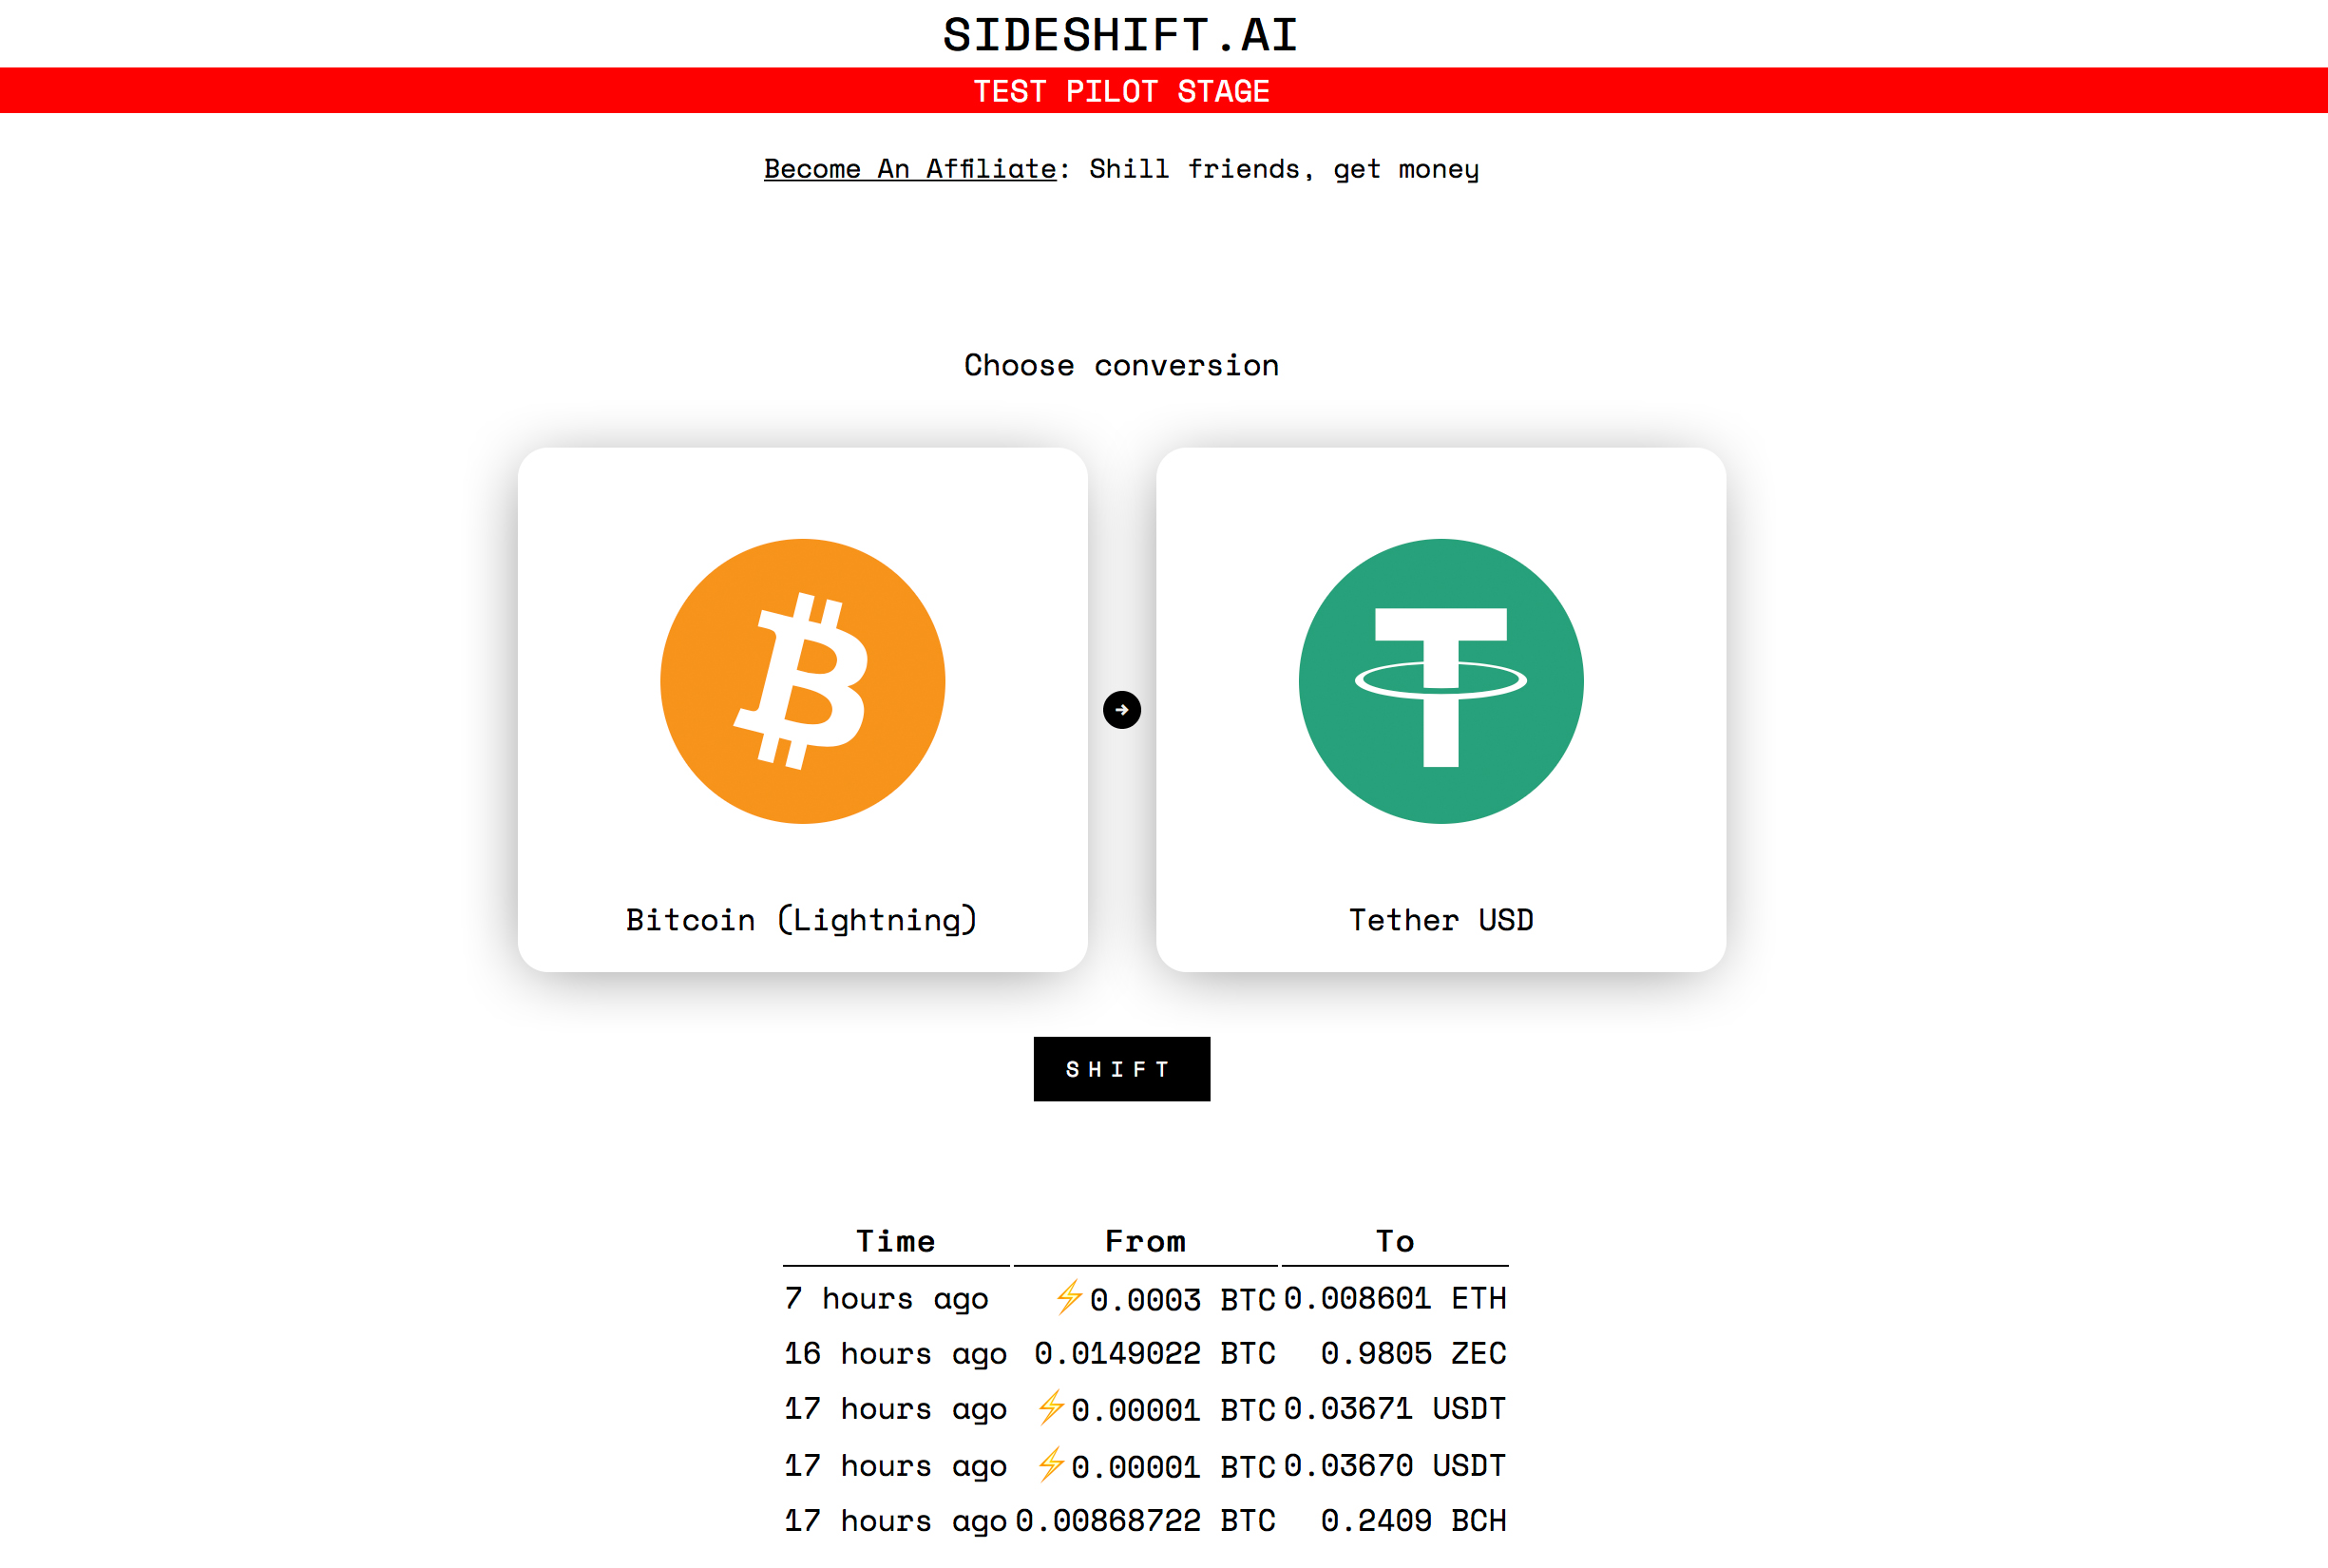 Sideshift App Demonstrates a Trade Between Lightning Network BTC and Tether